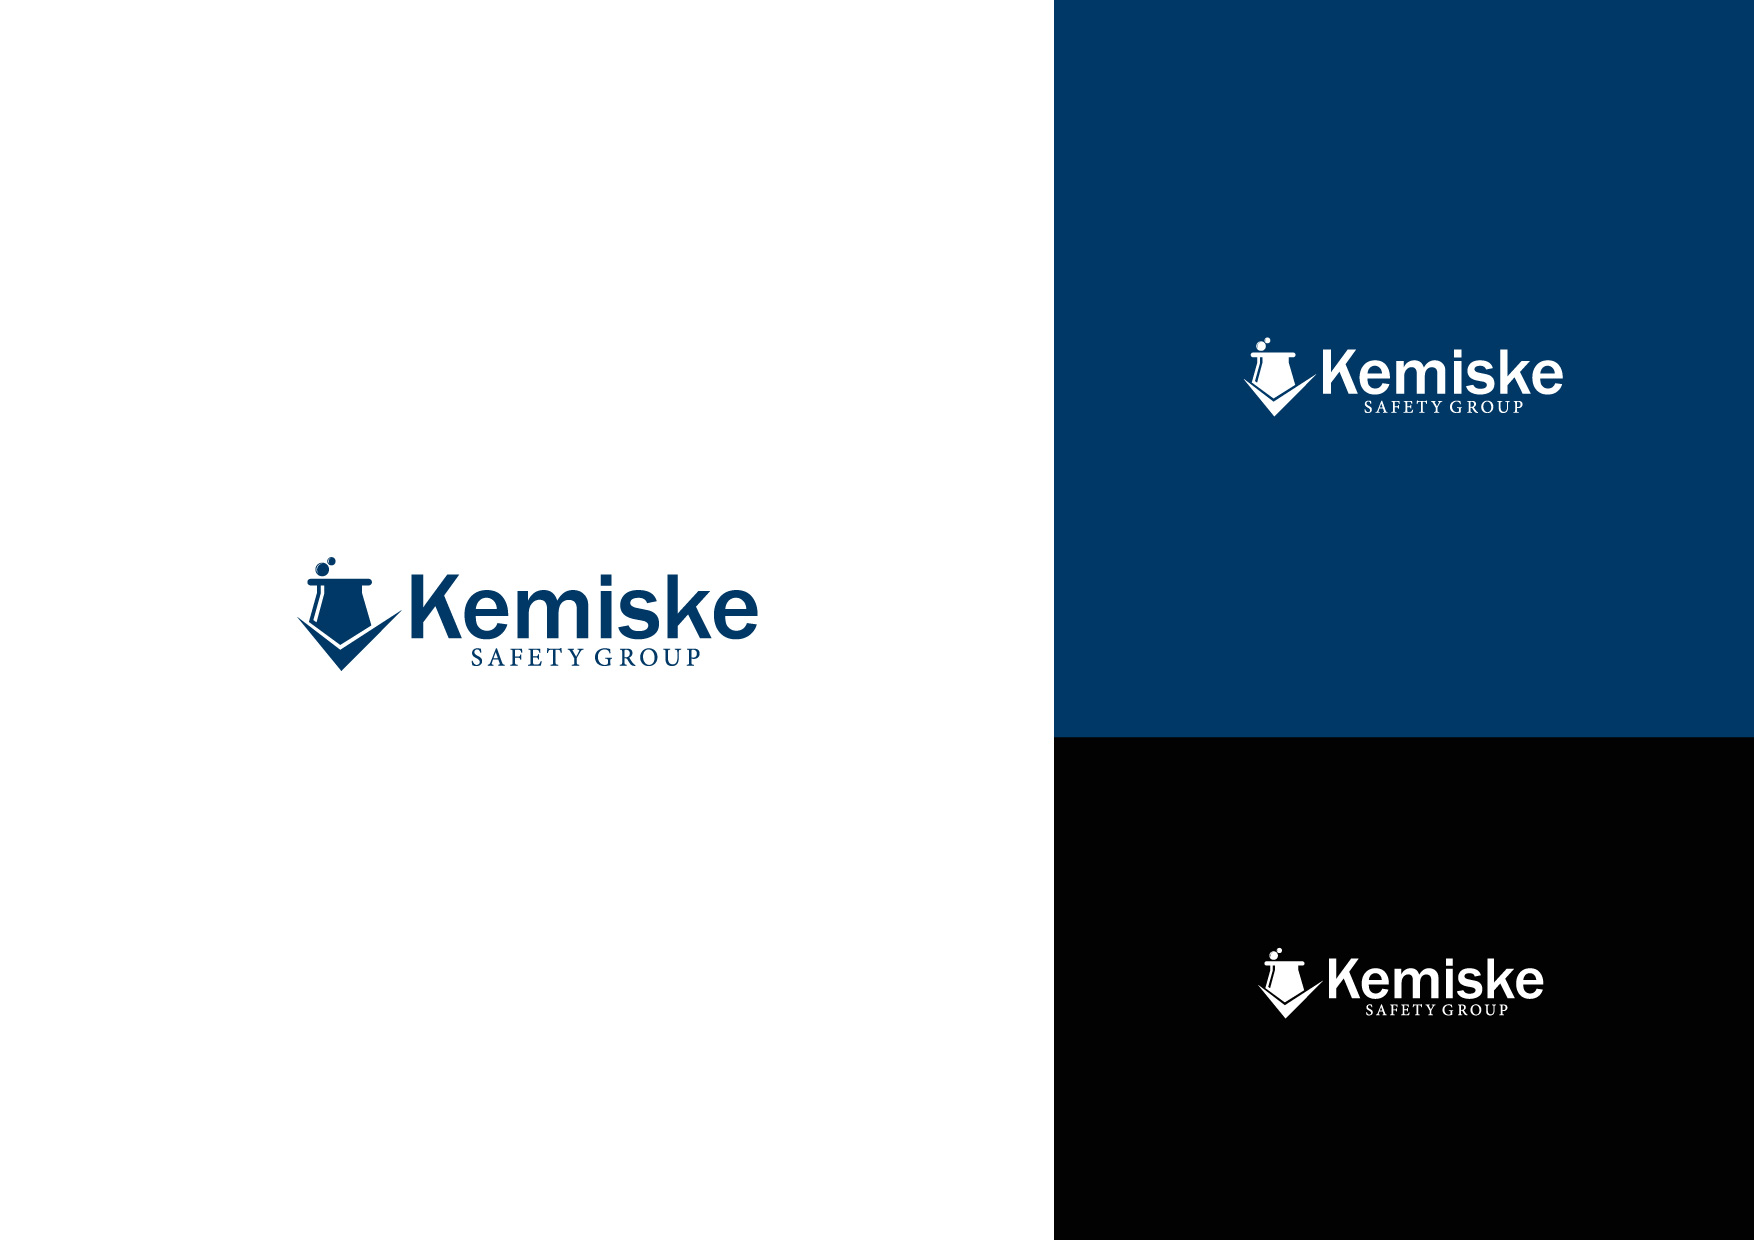 Logo Design by Osi Indra - Entry No. 62 in the Logo Design Contest New Logo Design for Kemiske Safety Group Inc..